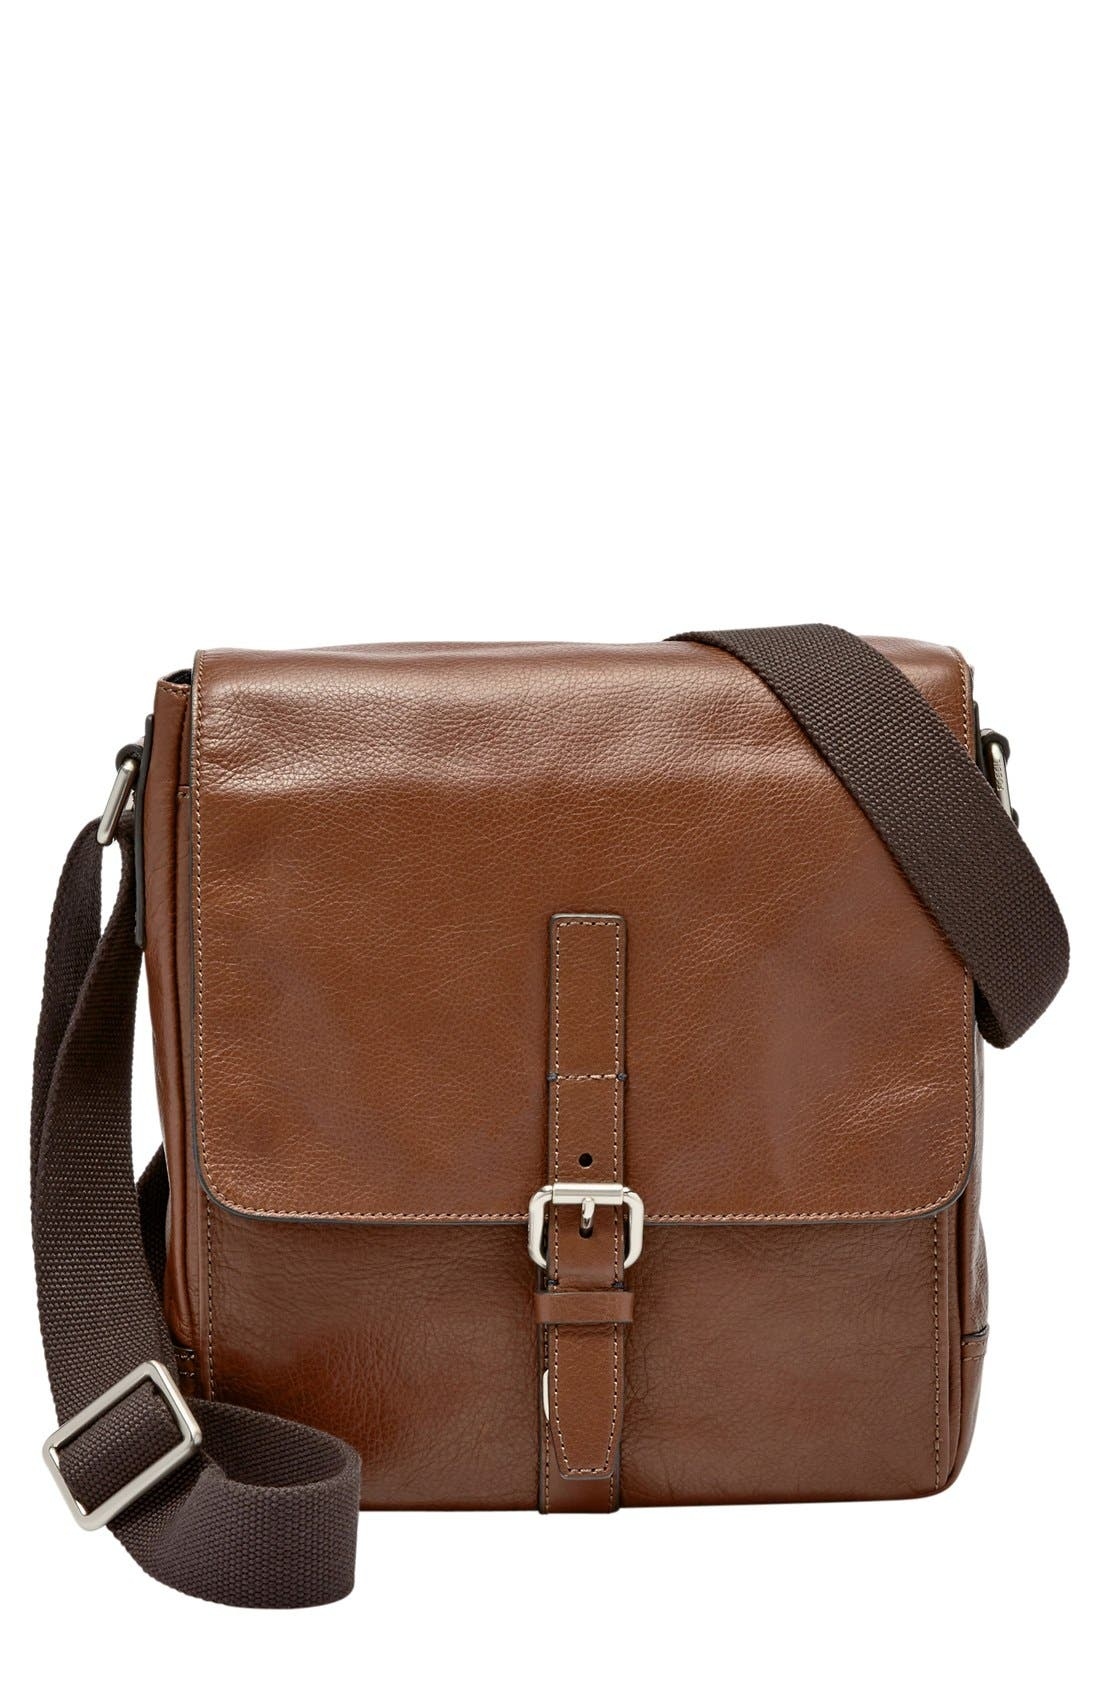 Fossil 'Davis' Leather Messenger Bag